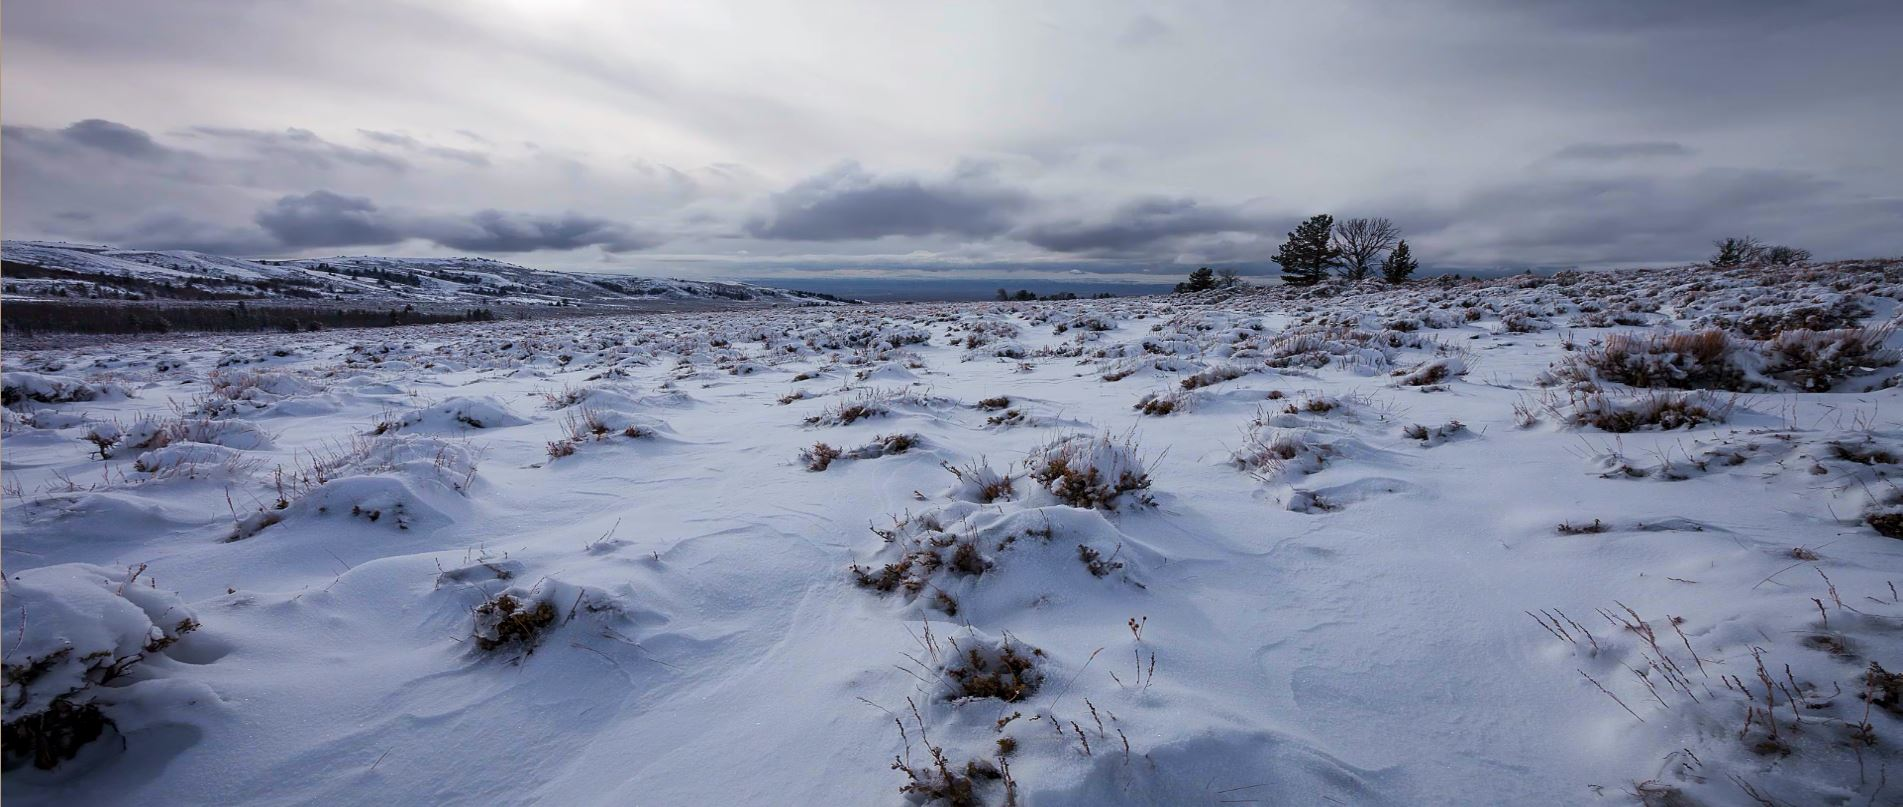 Wyoming Wildscapes a storm is coming 2 - Be There Before